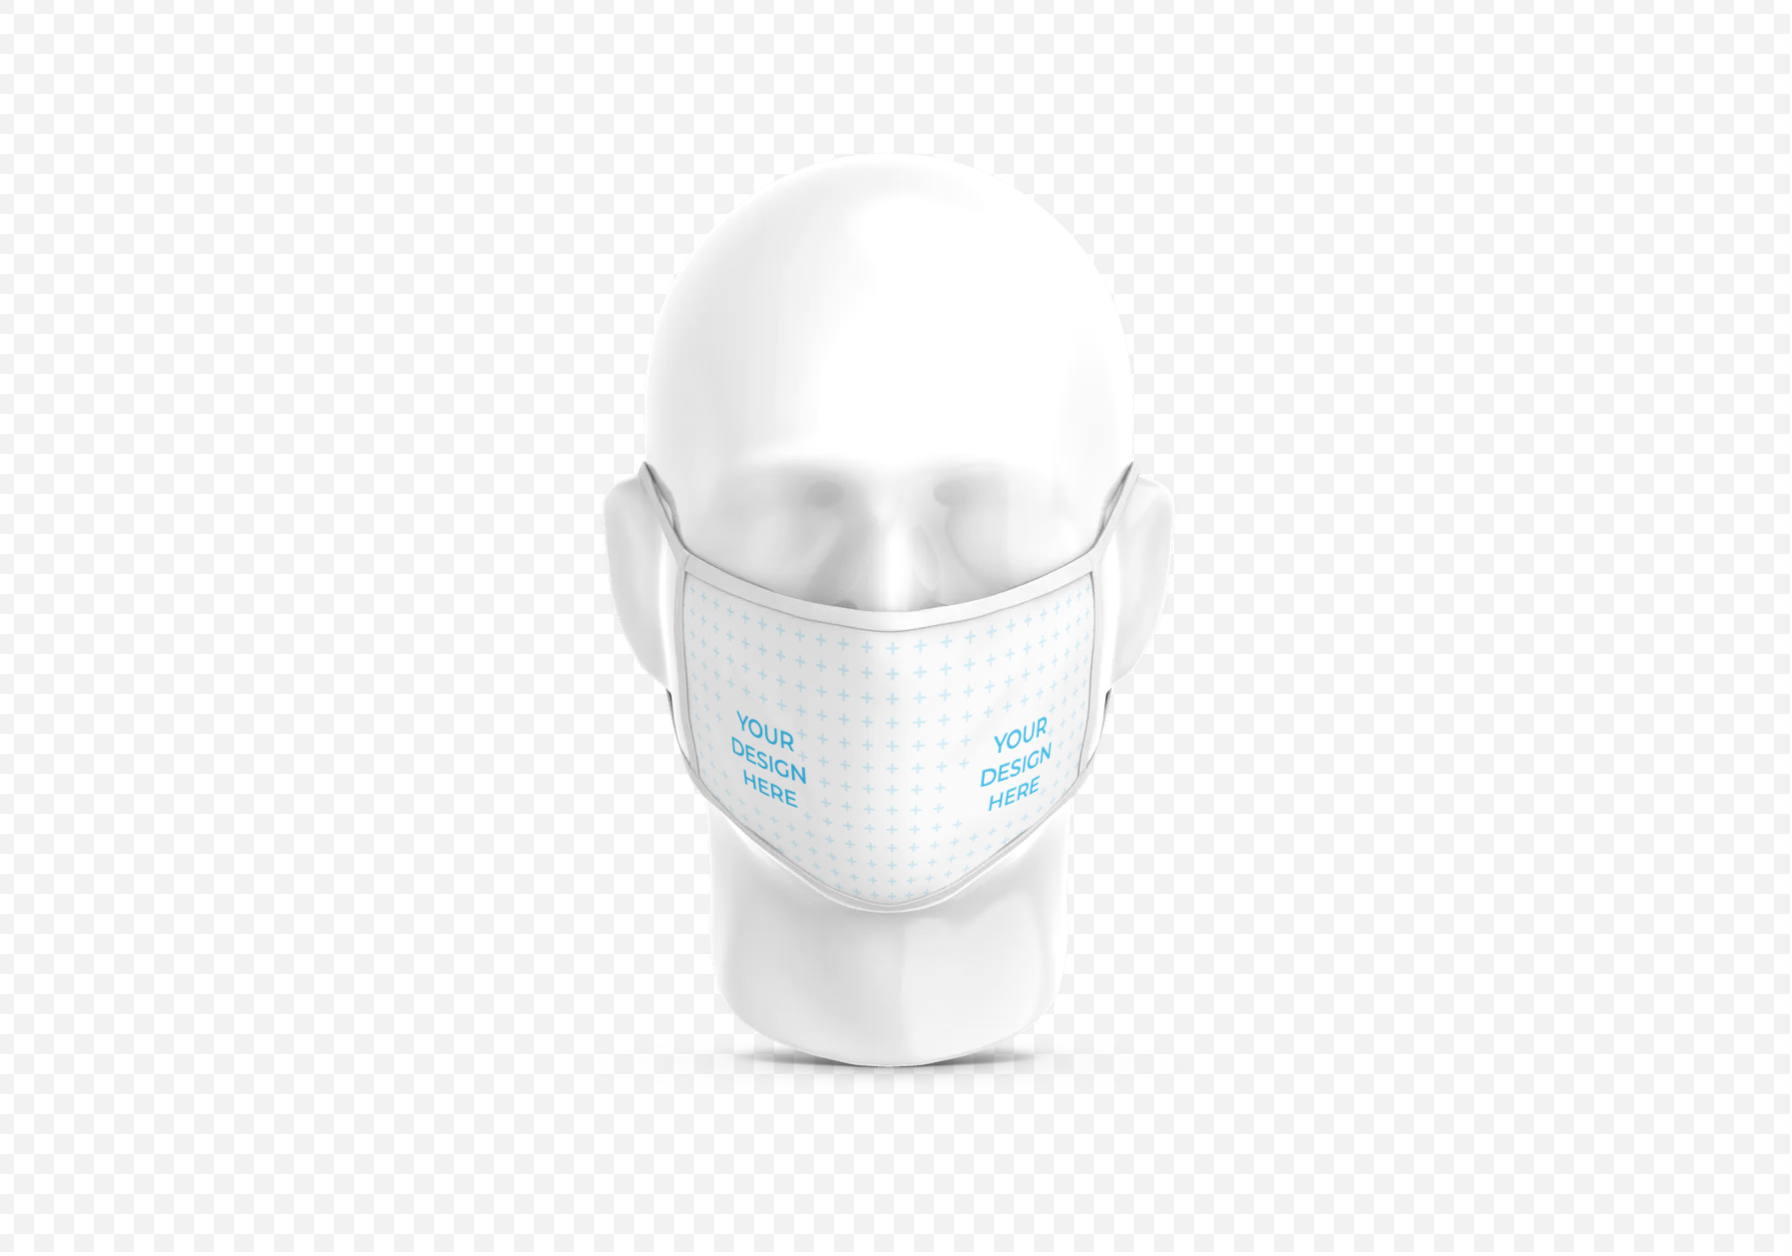 Cloth Face Mask on Plastic Head Free Mockup Generator